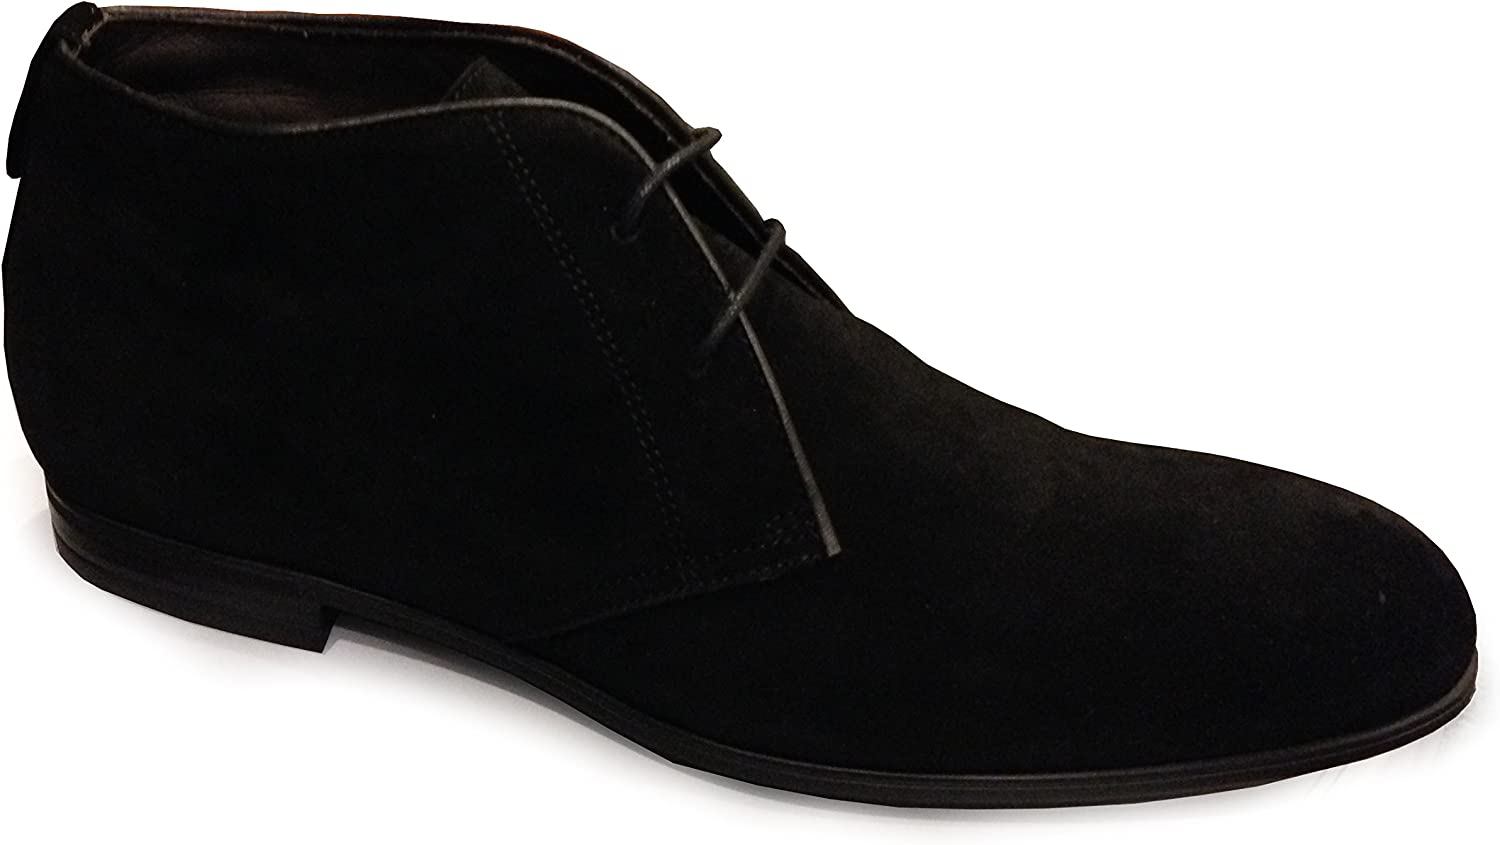 B01CRPHC0Q Bruno Magli Whitney Suede Lace-Up Chukka Boot 71JWeUh03BL